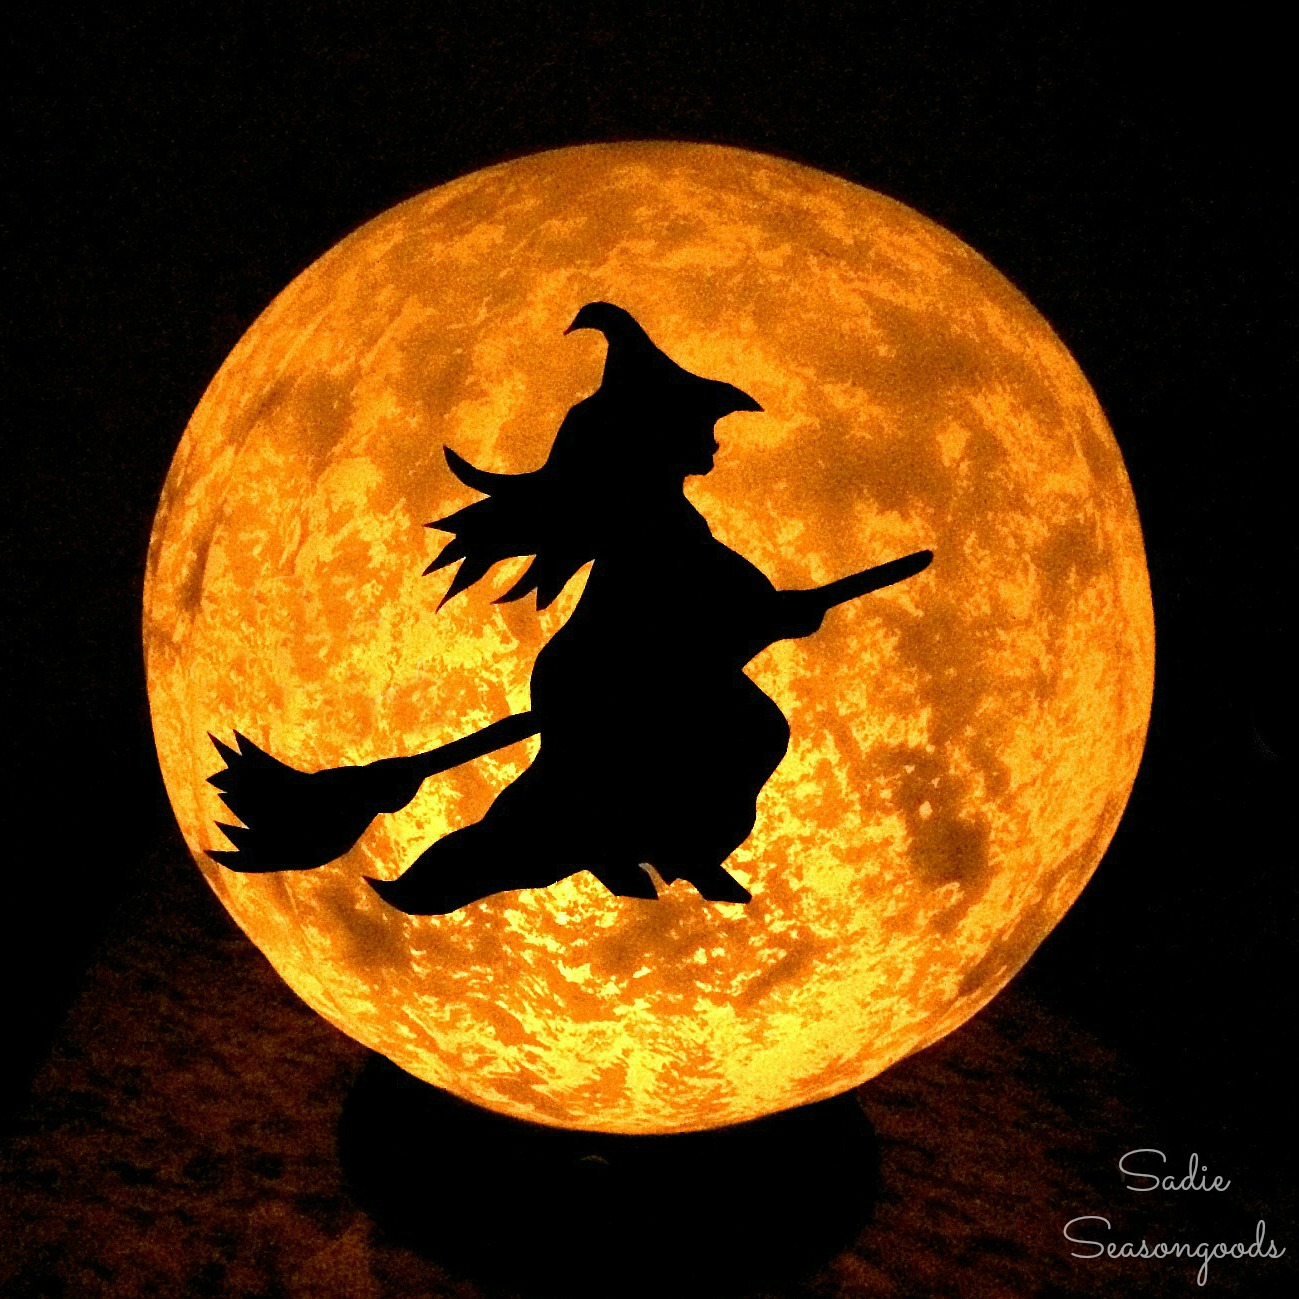 Halloween moon by upcycling a vintage light fixture into a light up moon with Halloween witch by Sadie Seasongoods